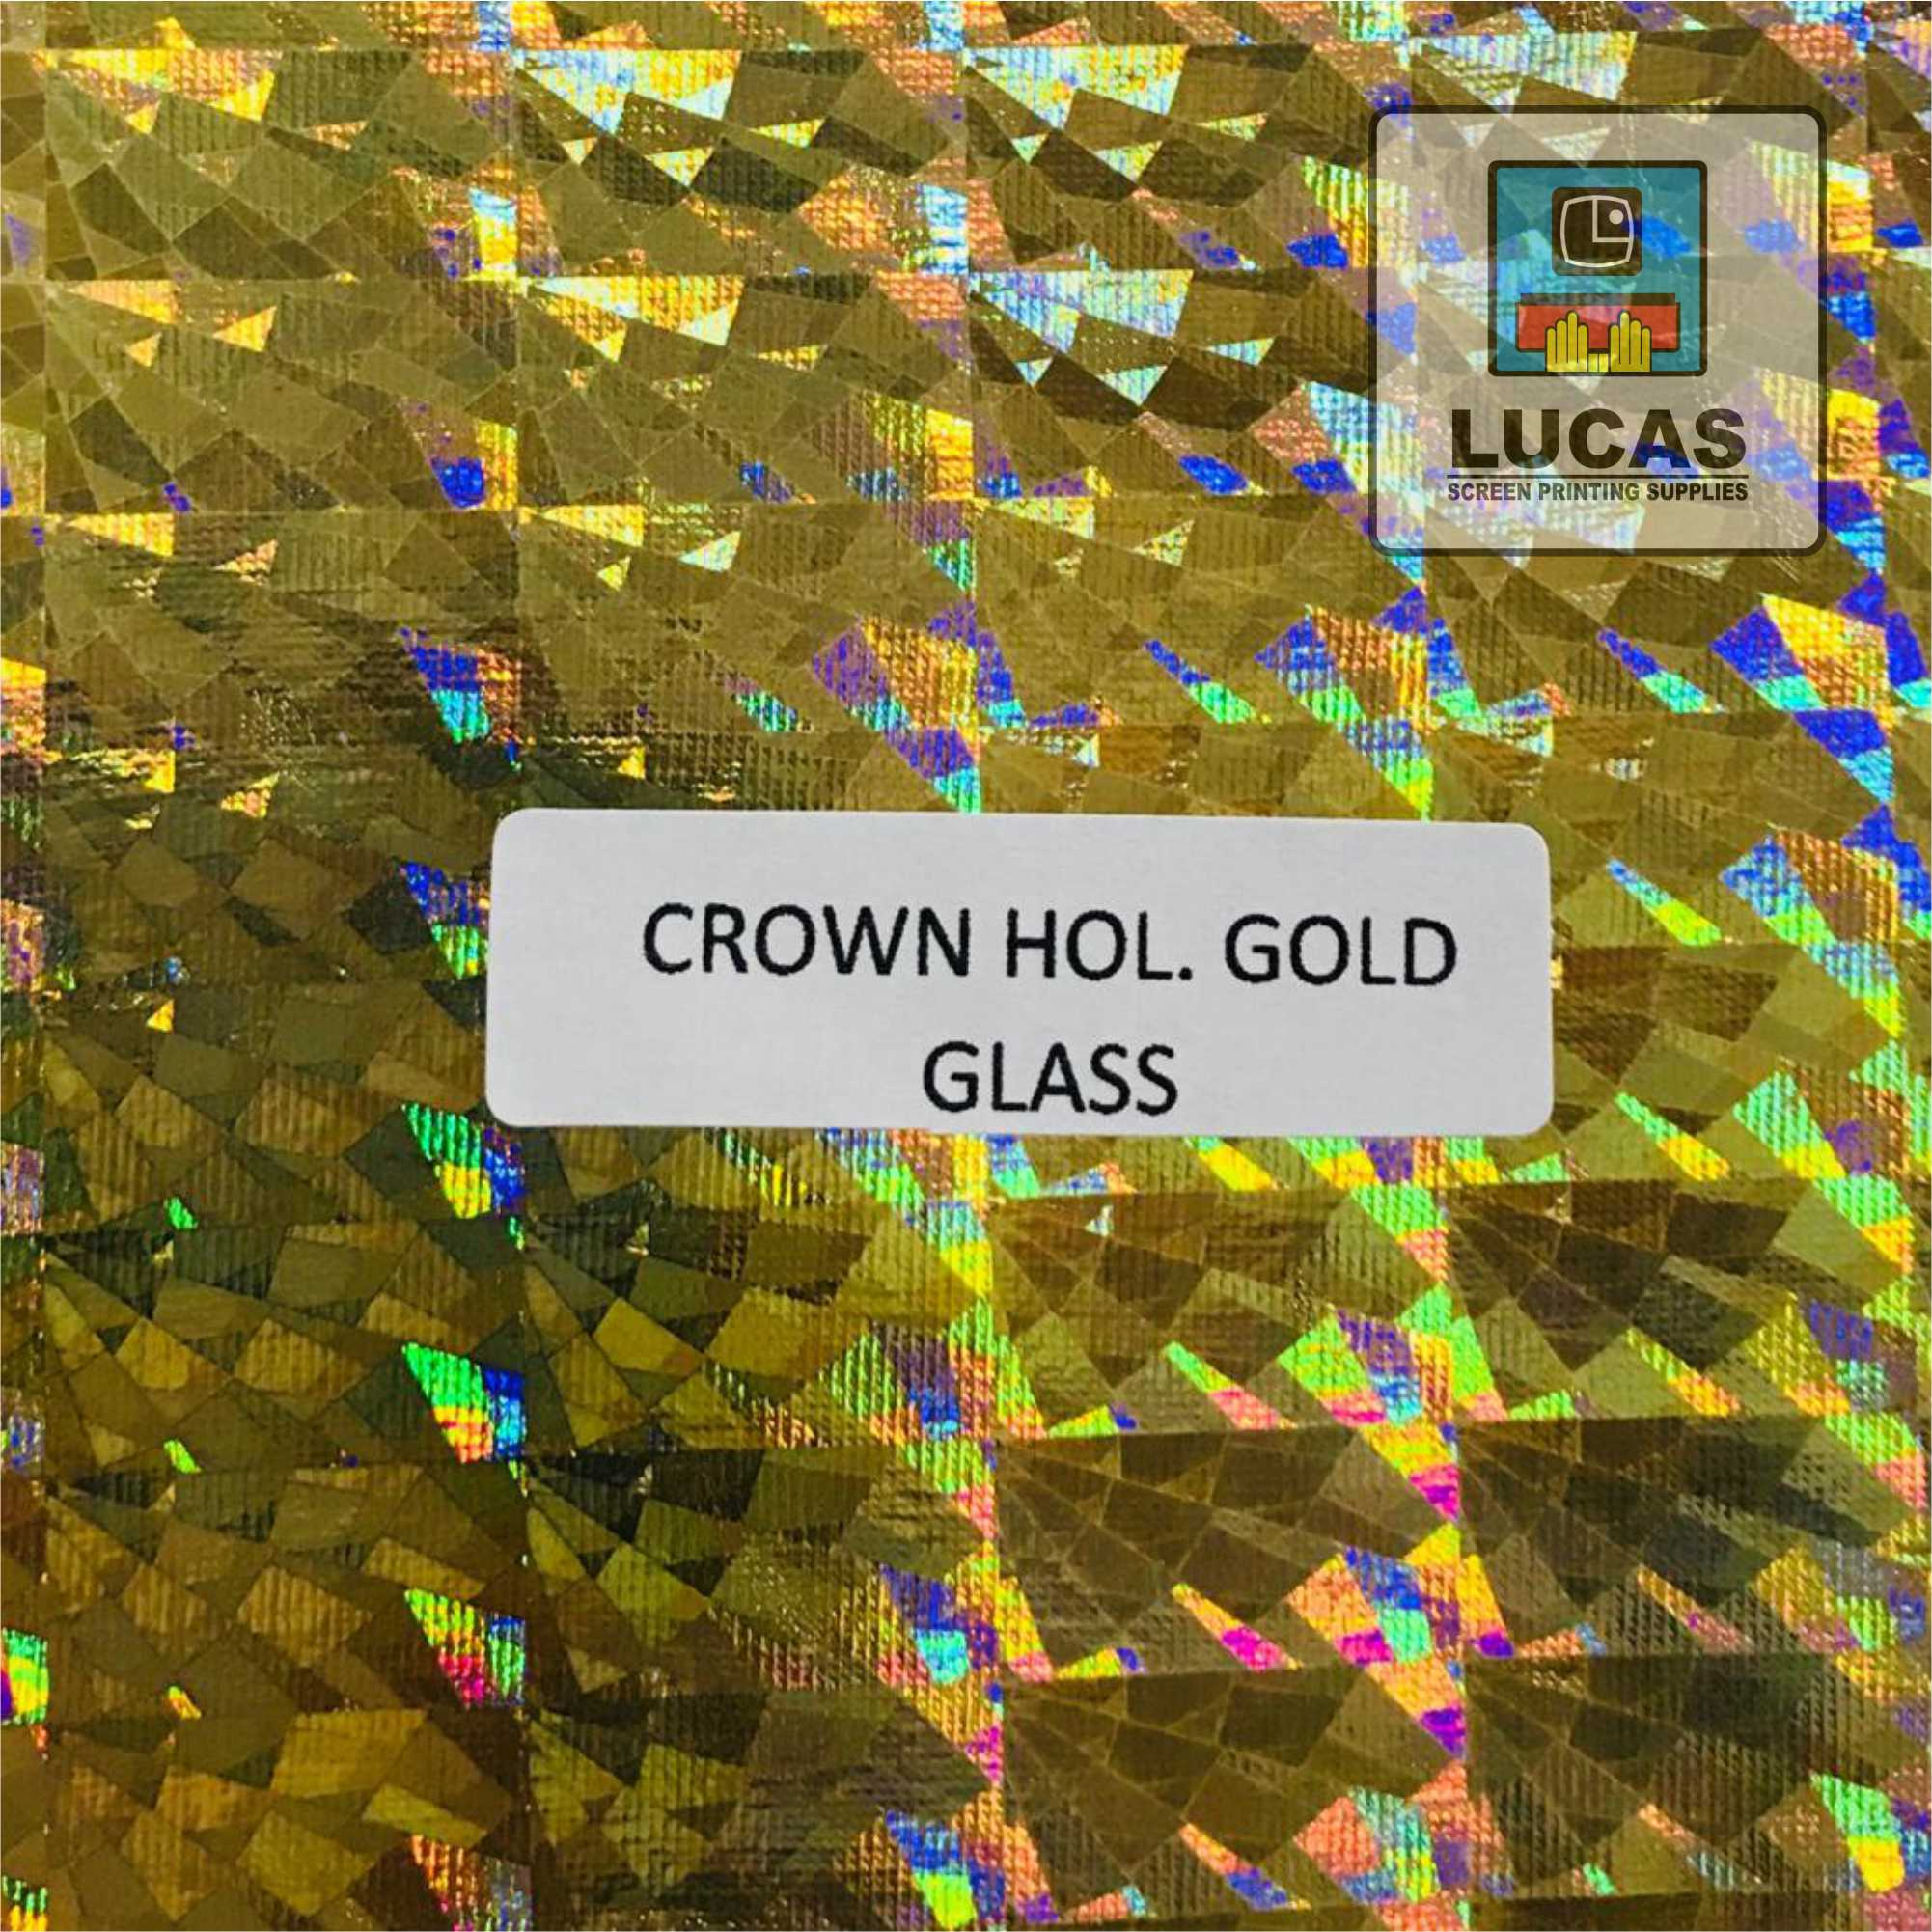 CROWN HOLOGRAM GOLD GLASS.jpg